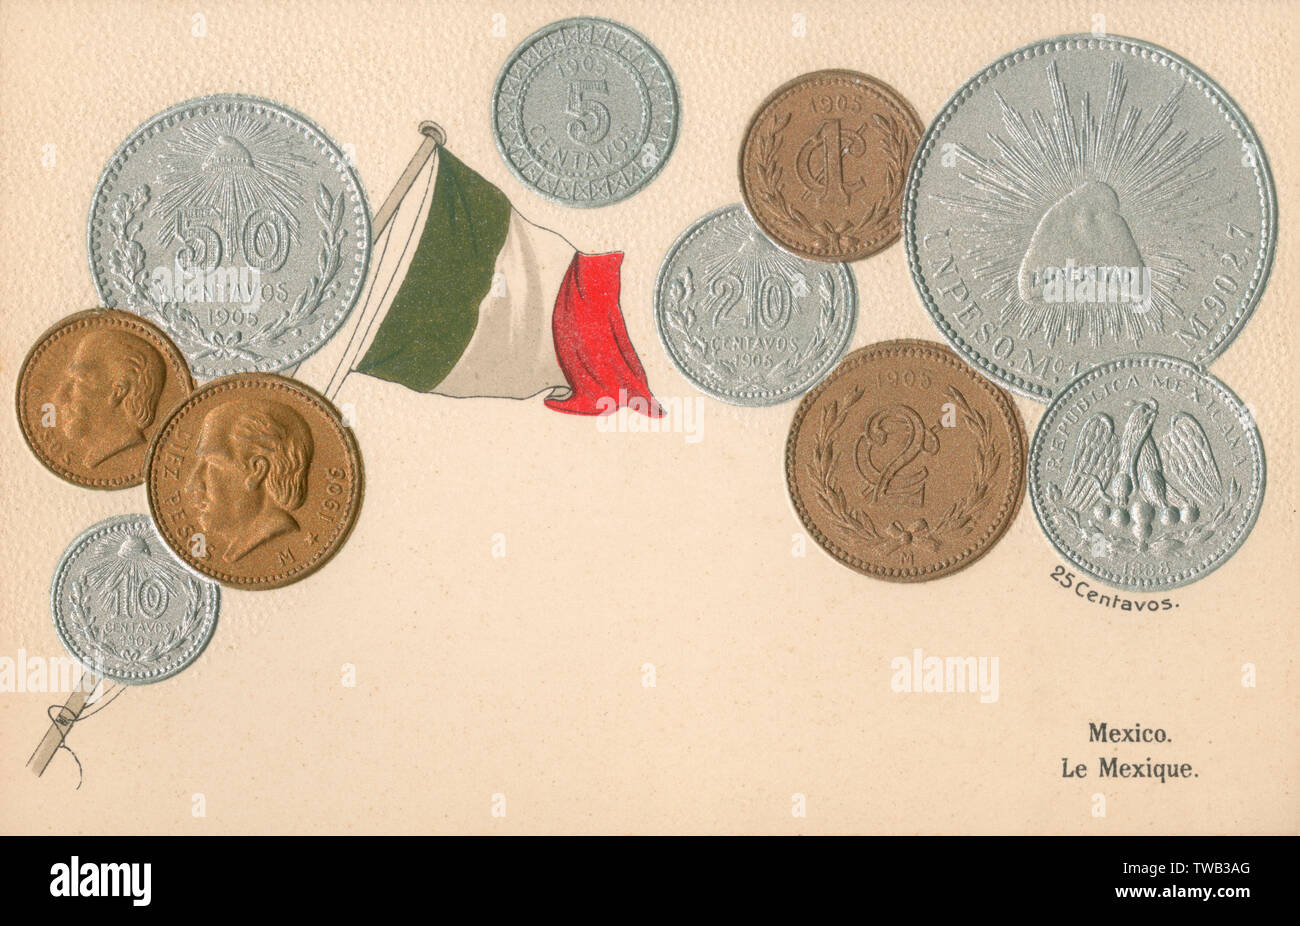 Coins of Mexico, Central America and flag.     Date: 1910 - Stock Image